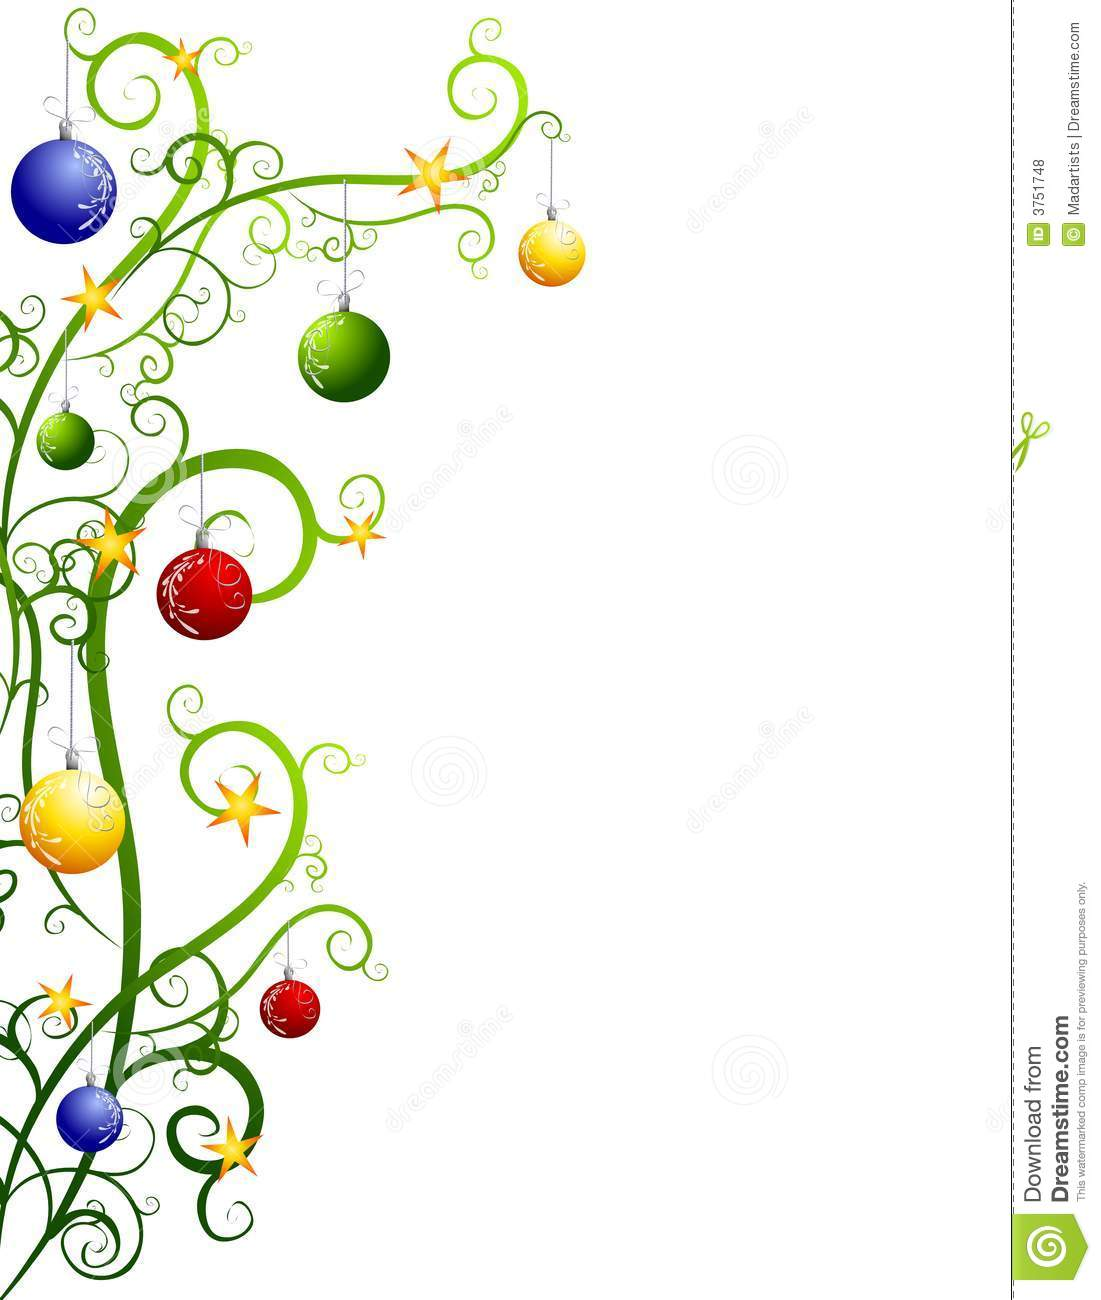 Abstract Christmas Tree Border With Ornaments Royalty Free Stock ...